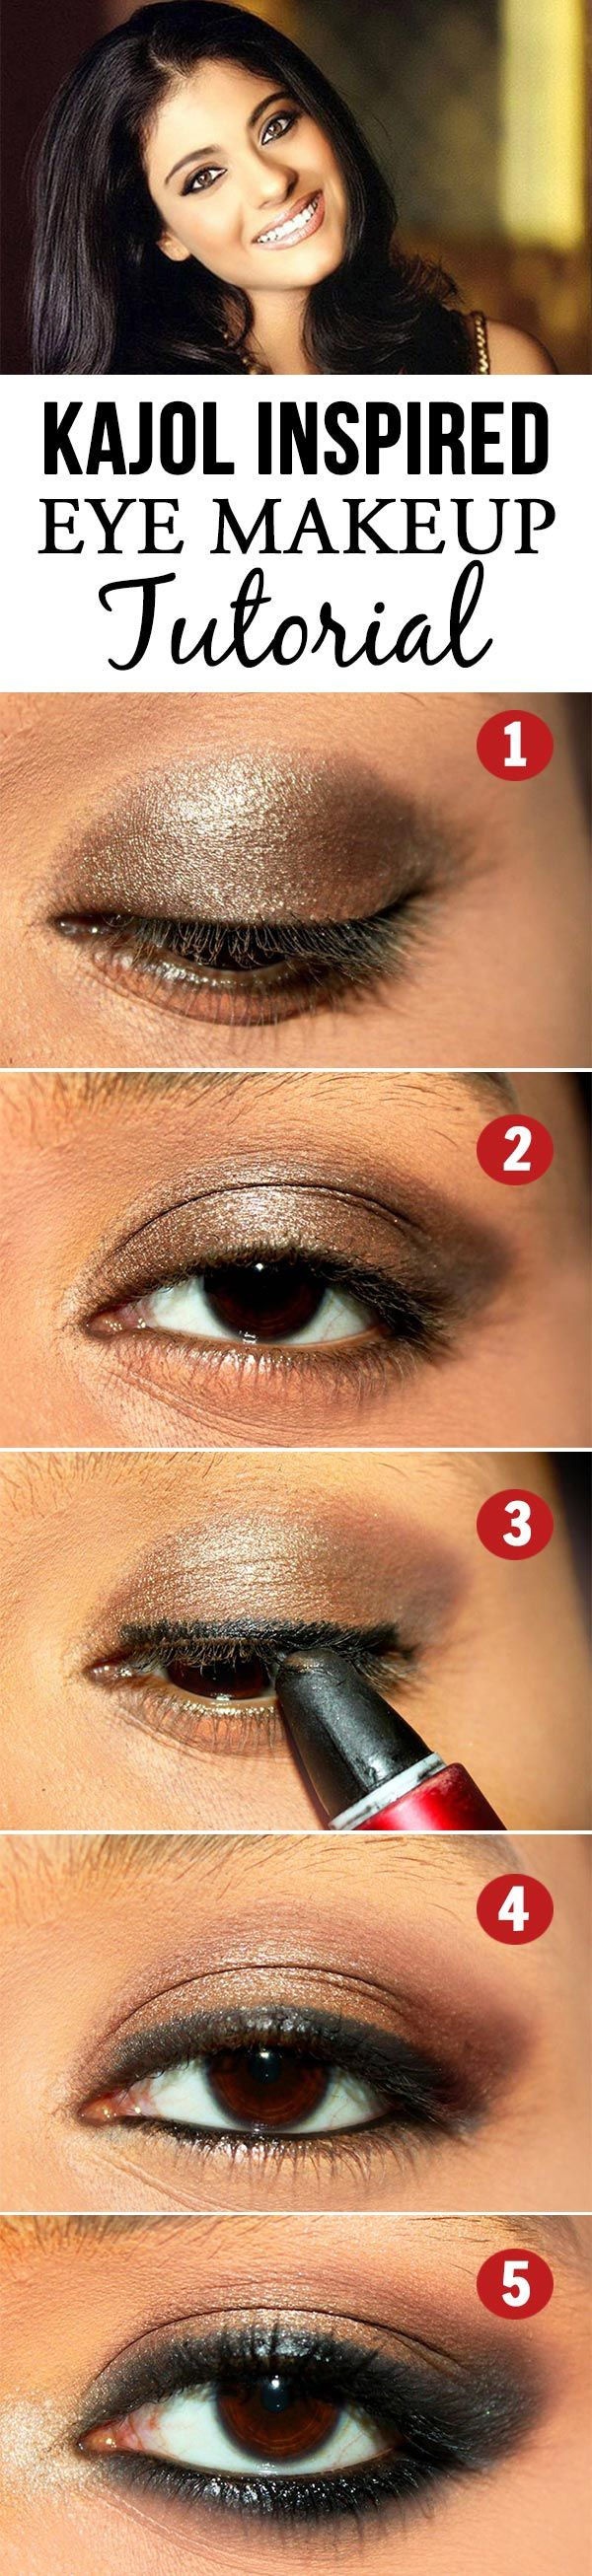 Bollywood inspired eye makeup step by step tutorial with images bollywood inspired eye makeup step by step tutorial with images eye makeup steps makeup steps and bollywood baditri Choice Image